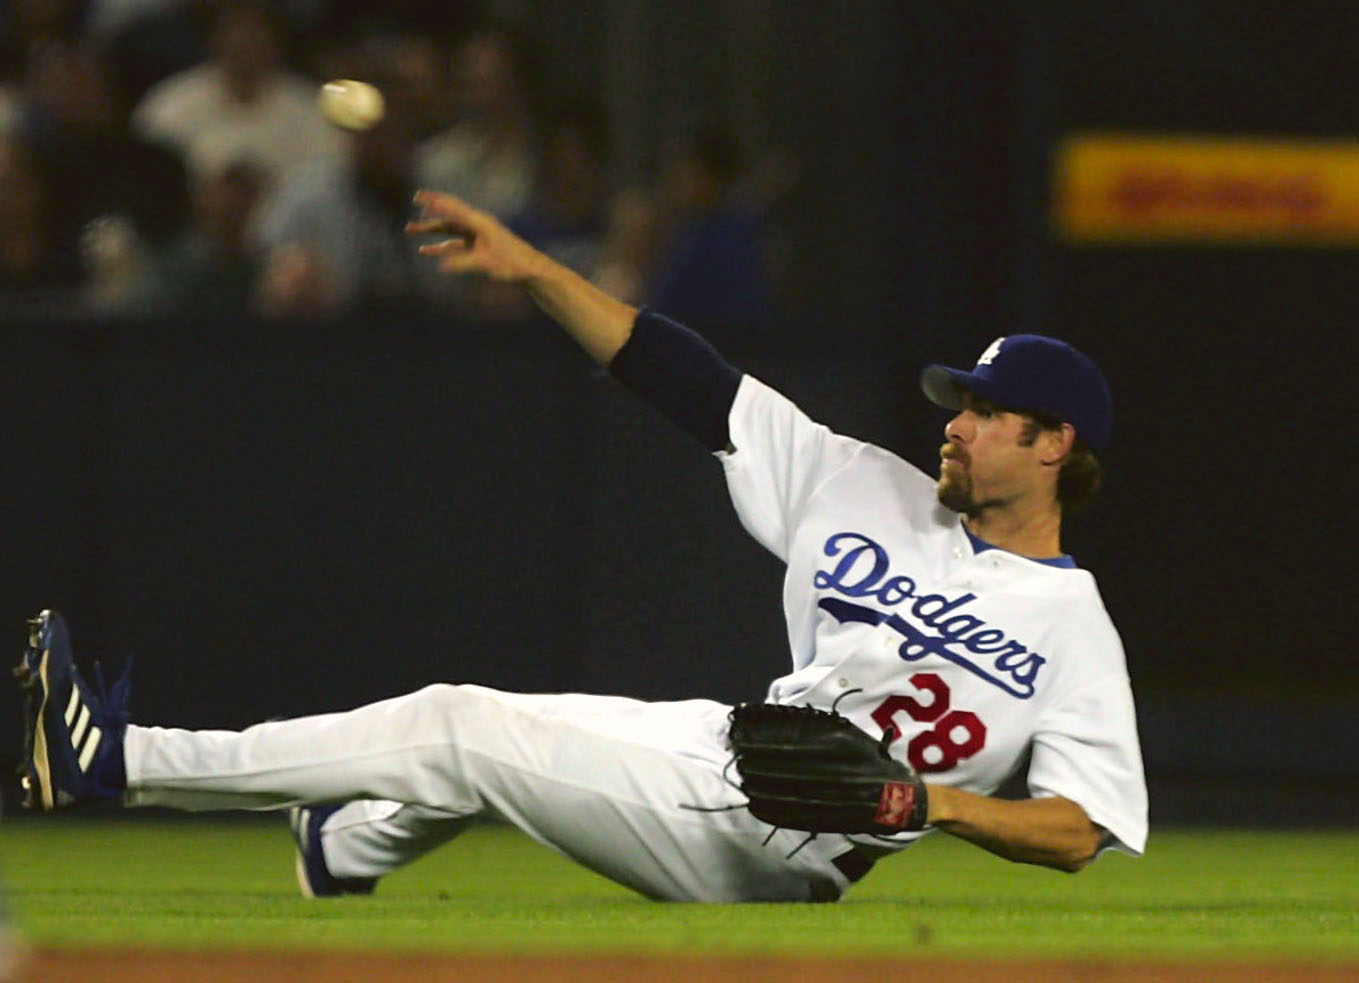 LOS ANGELES - SEPTEMBER 29:  Left fielder Jayson Werth #28 of the Los Angeles Dodgers throws to third but can't get Luis Gonzalez of the Arizona Diamondbacks after diving for a single by Chad Tracy on September 29, 2005 at Dodger Stadium in Los Angeles, C